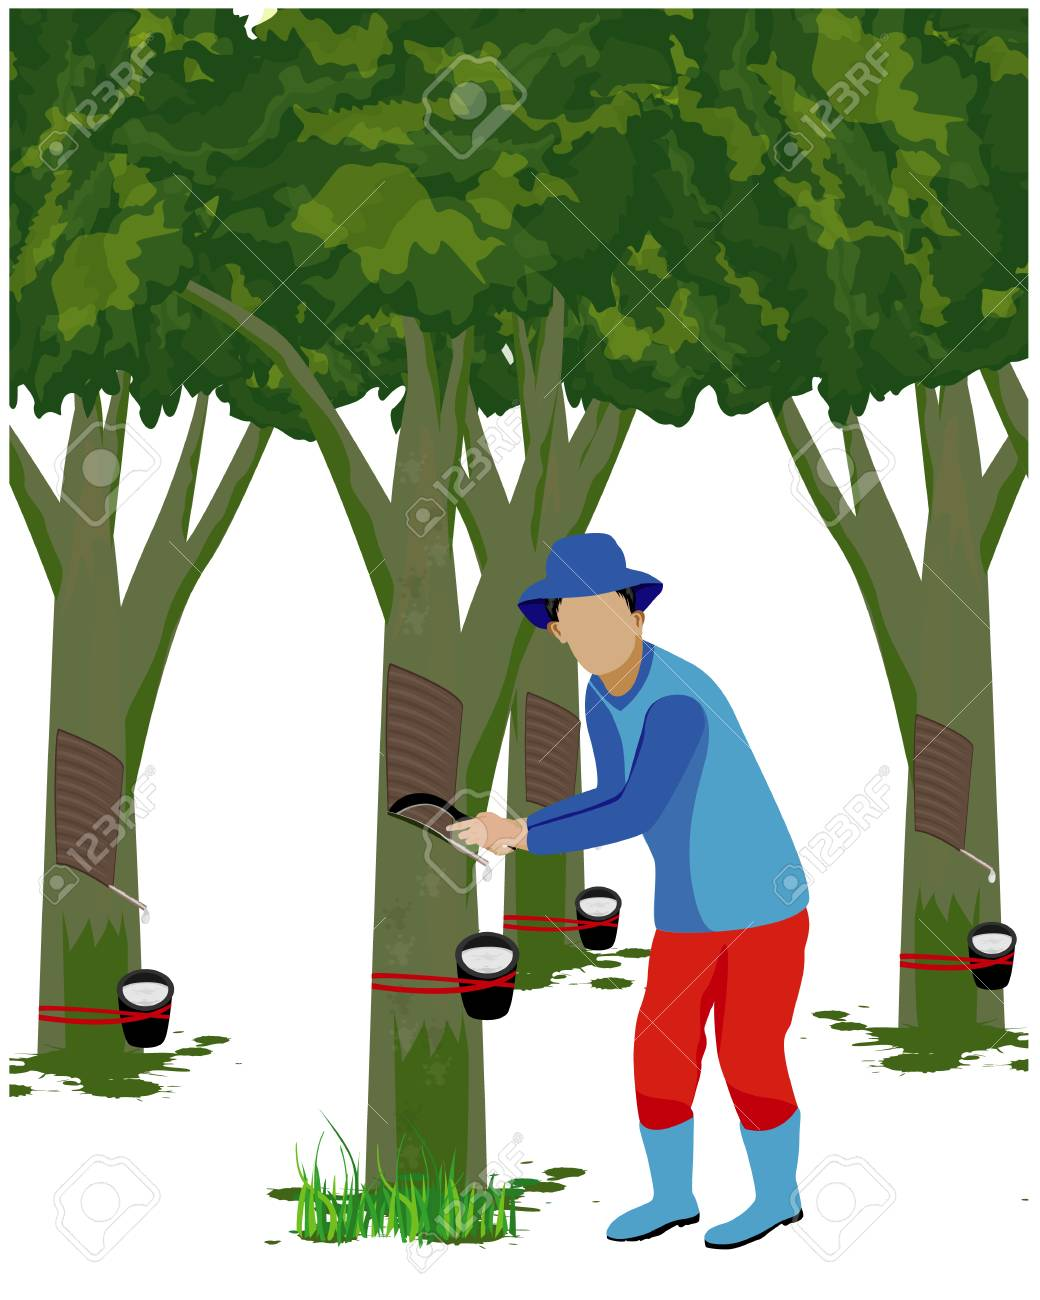 Agriculturist Cut Rubber Tree Vector Design Royalty Free Cliparts